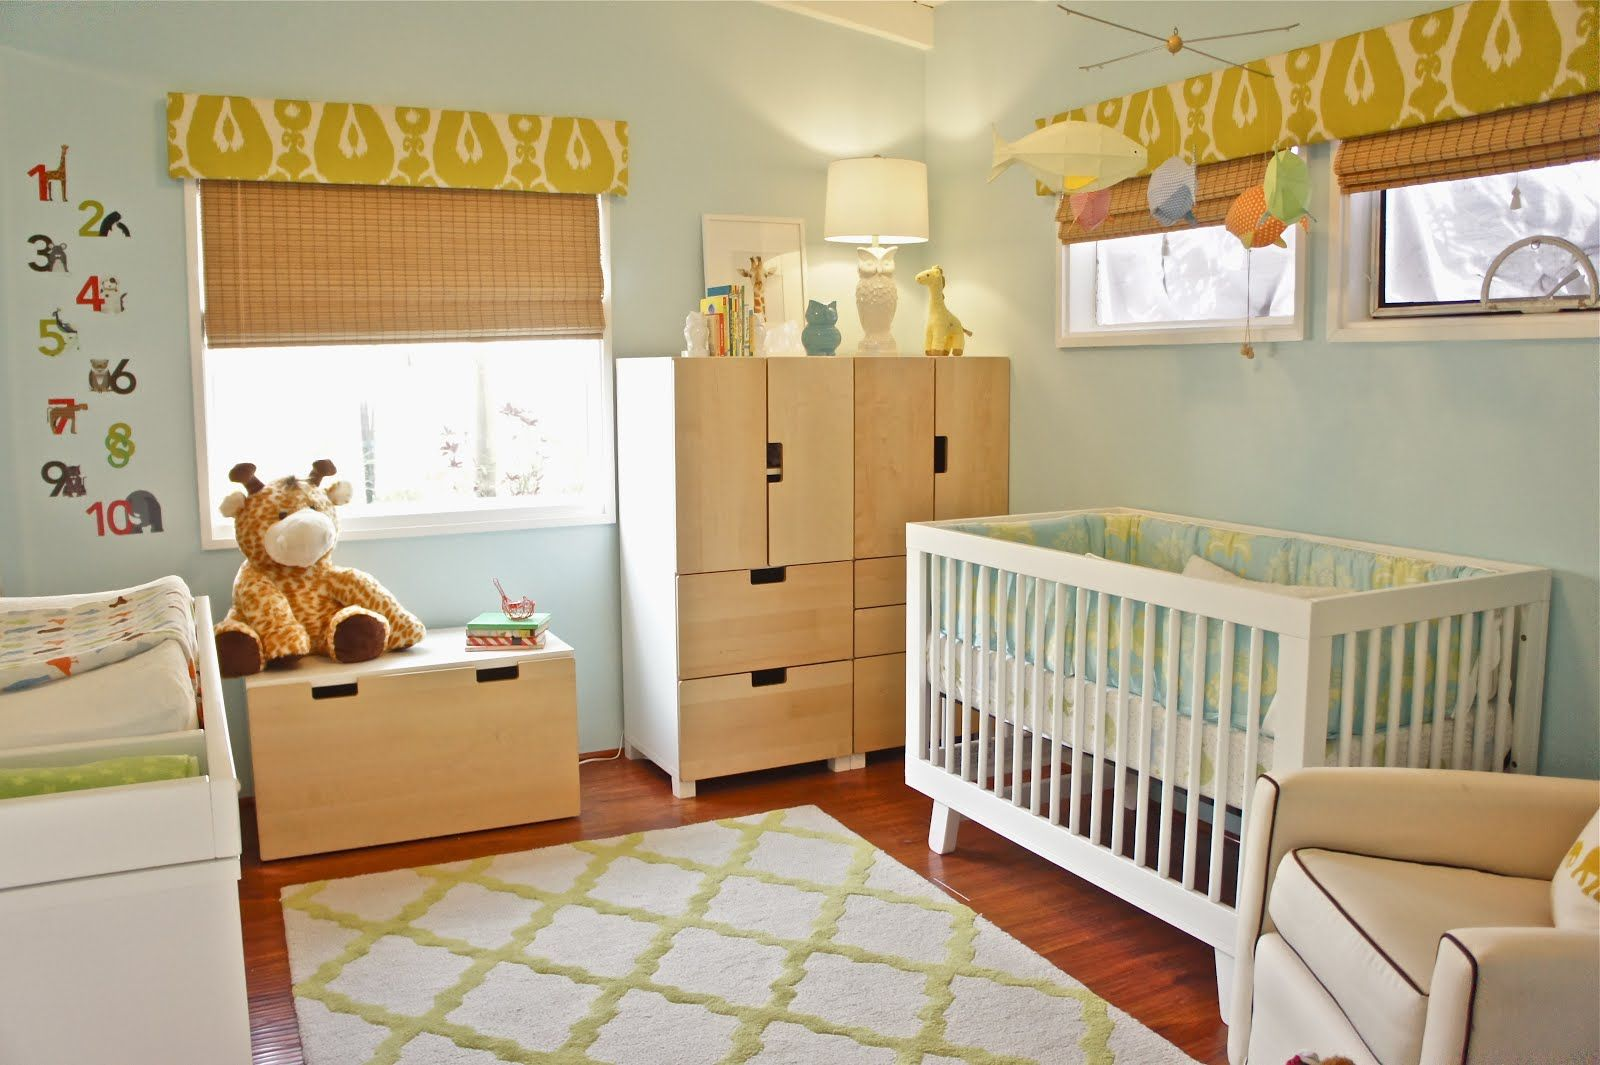 Ikea Baby Nursery Mix Of White And Blonde Wood